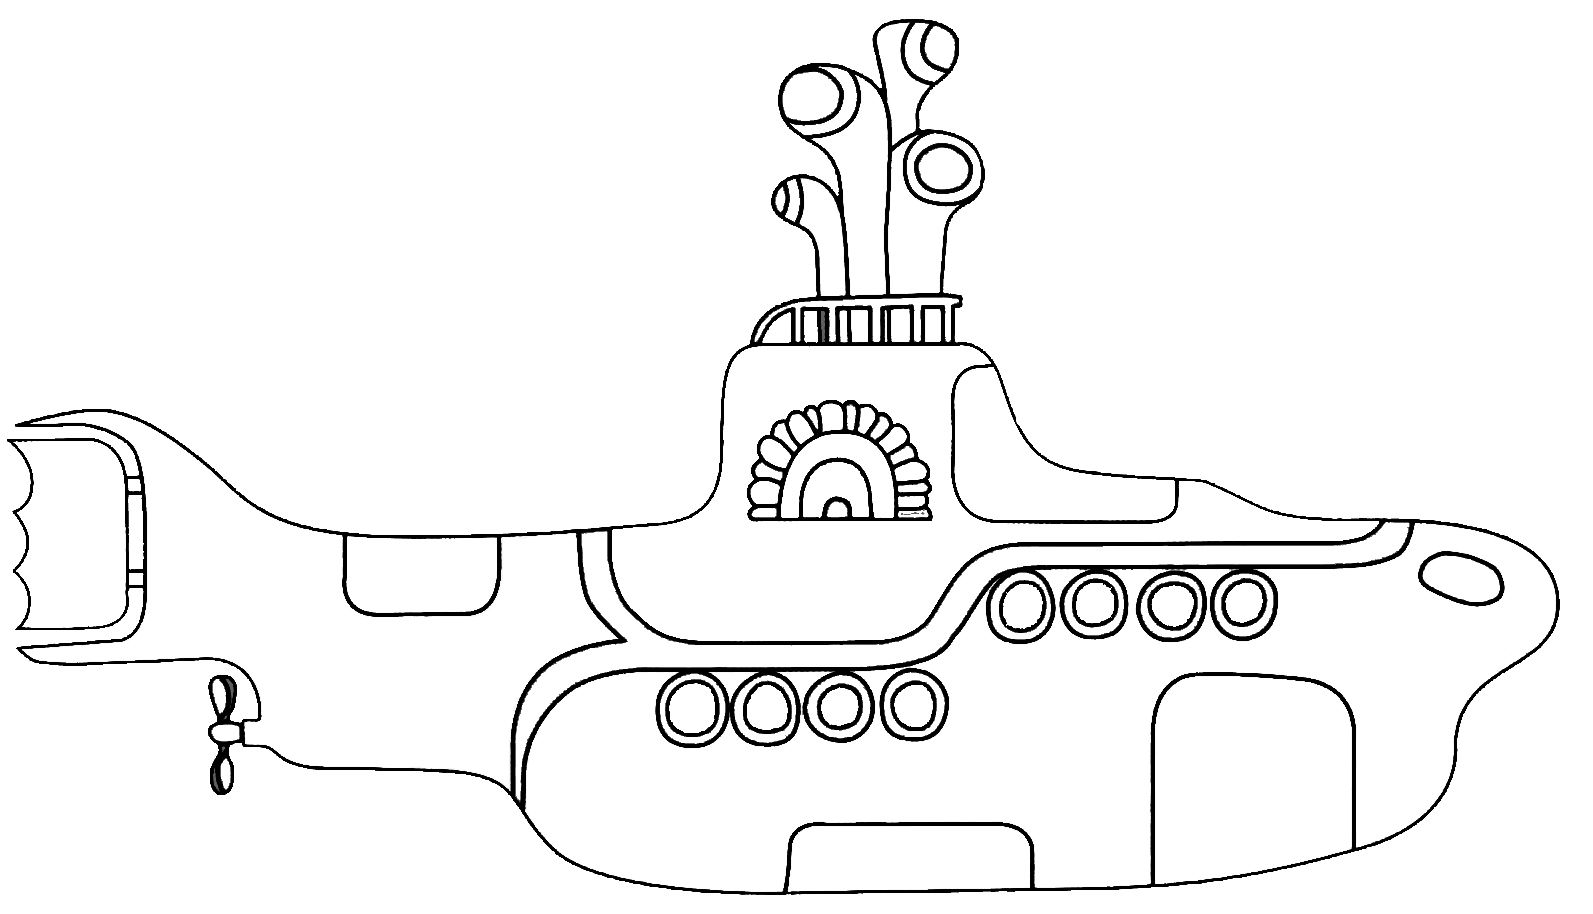 yellowsubmarine-130438.jpg 1,593×914 pixels | Art 5 th grade ...